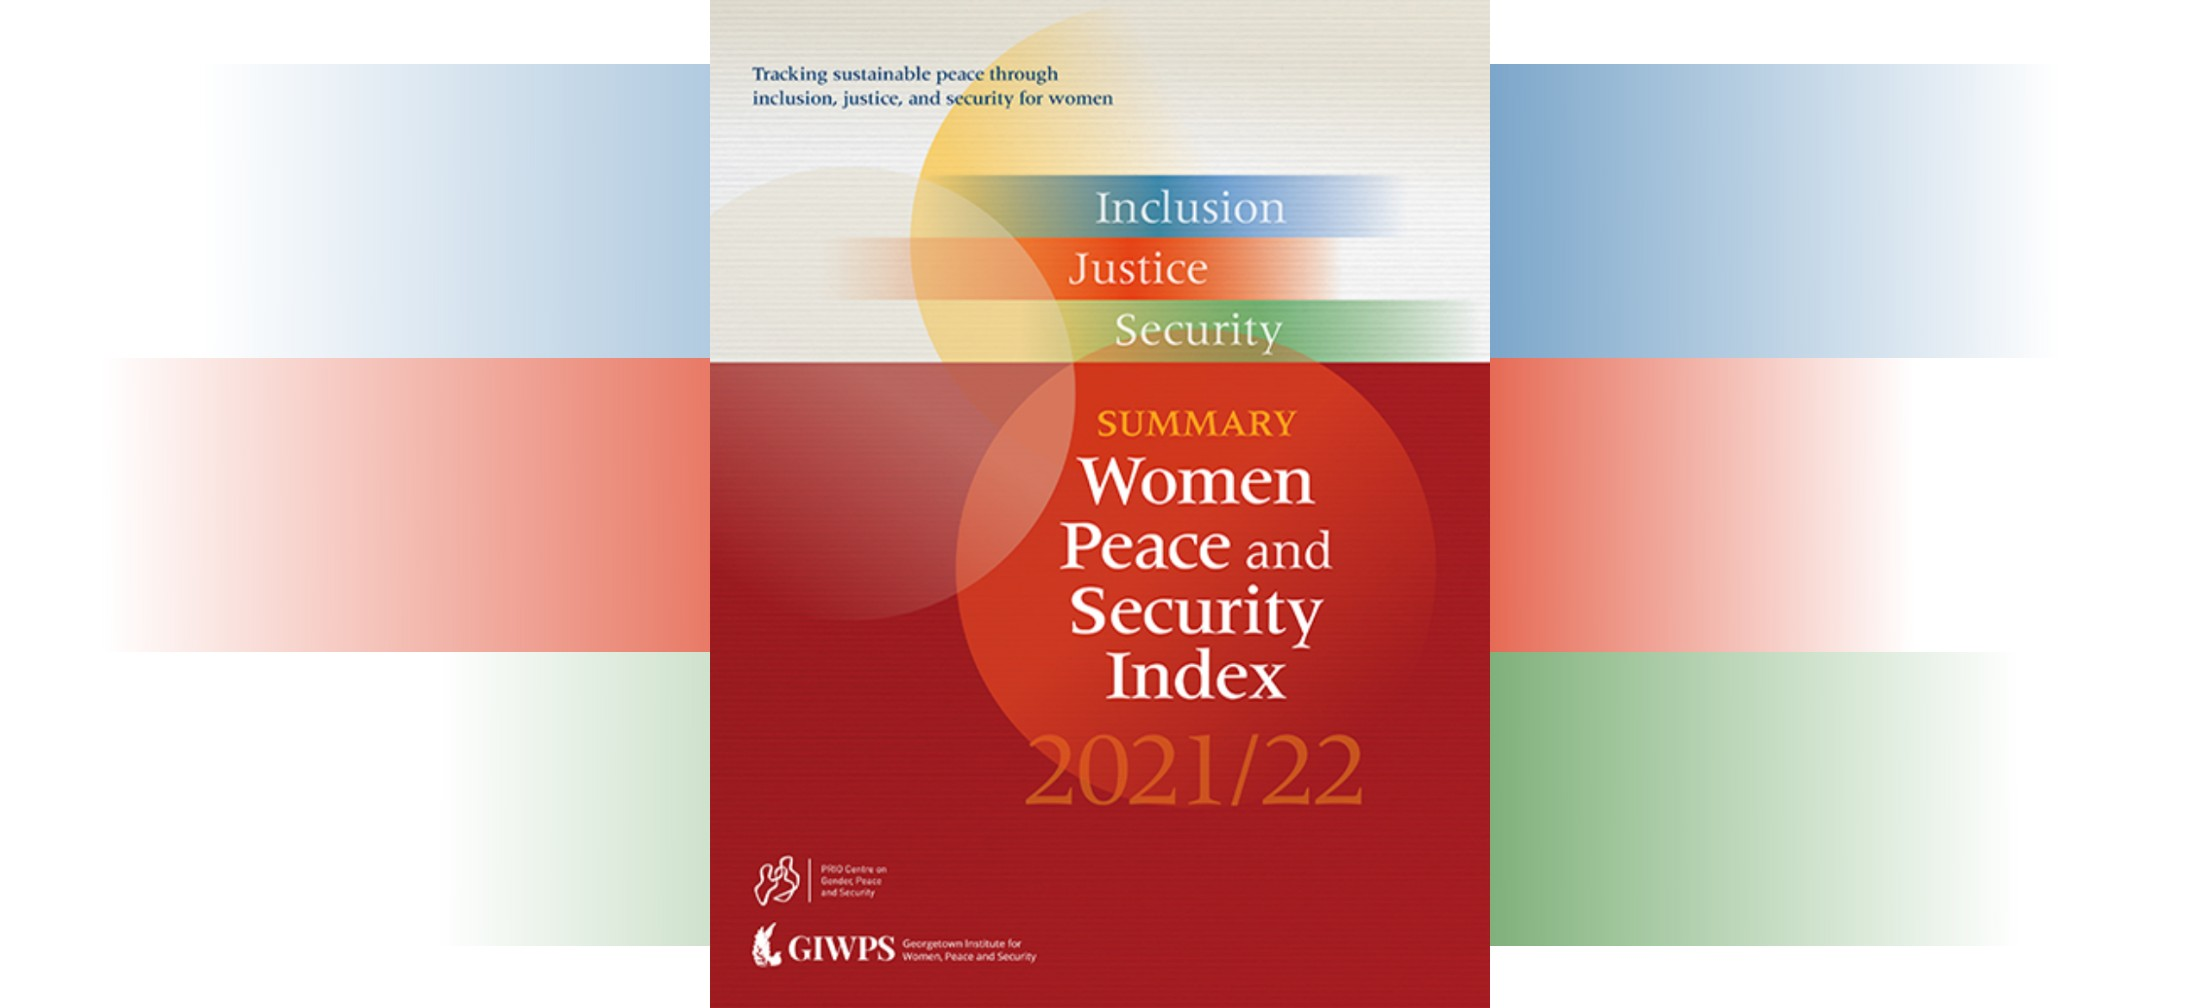 2021/2022 WPS Index Report Cover